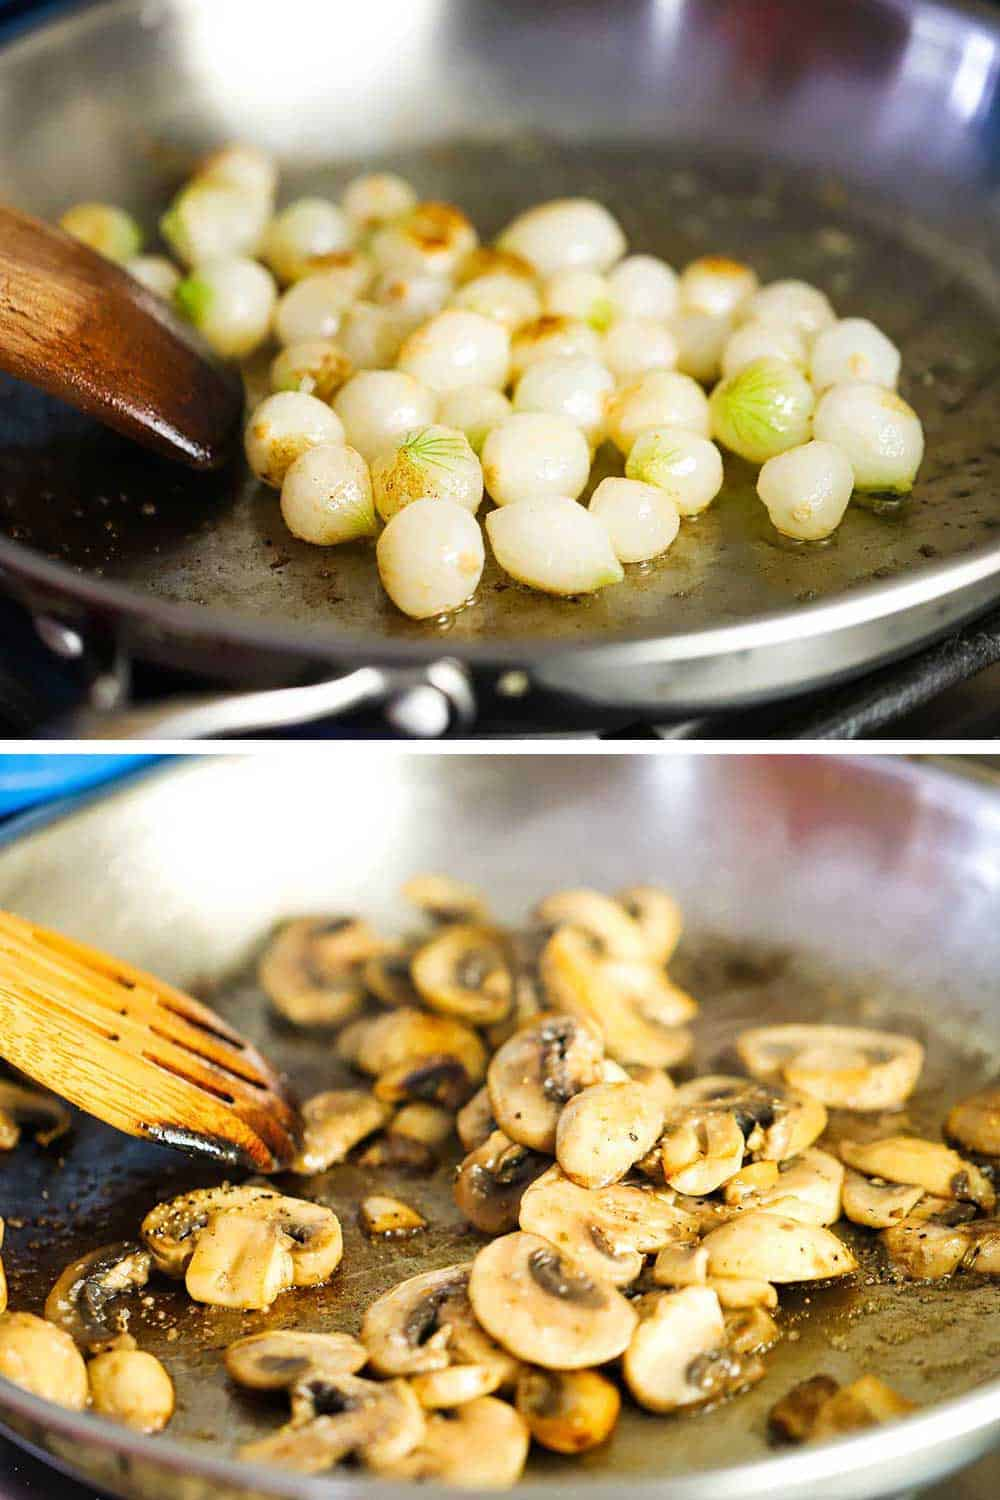 2 stacked images, the top a silver saucepan filled with pearl onions being browned in butter and the bottom the same saucepan with sautéed mushrooms in it.